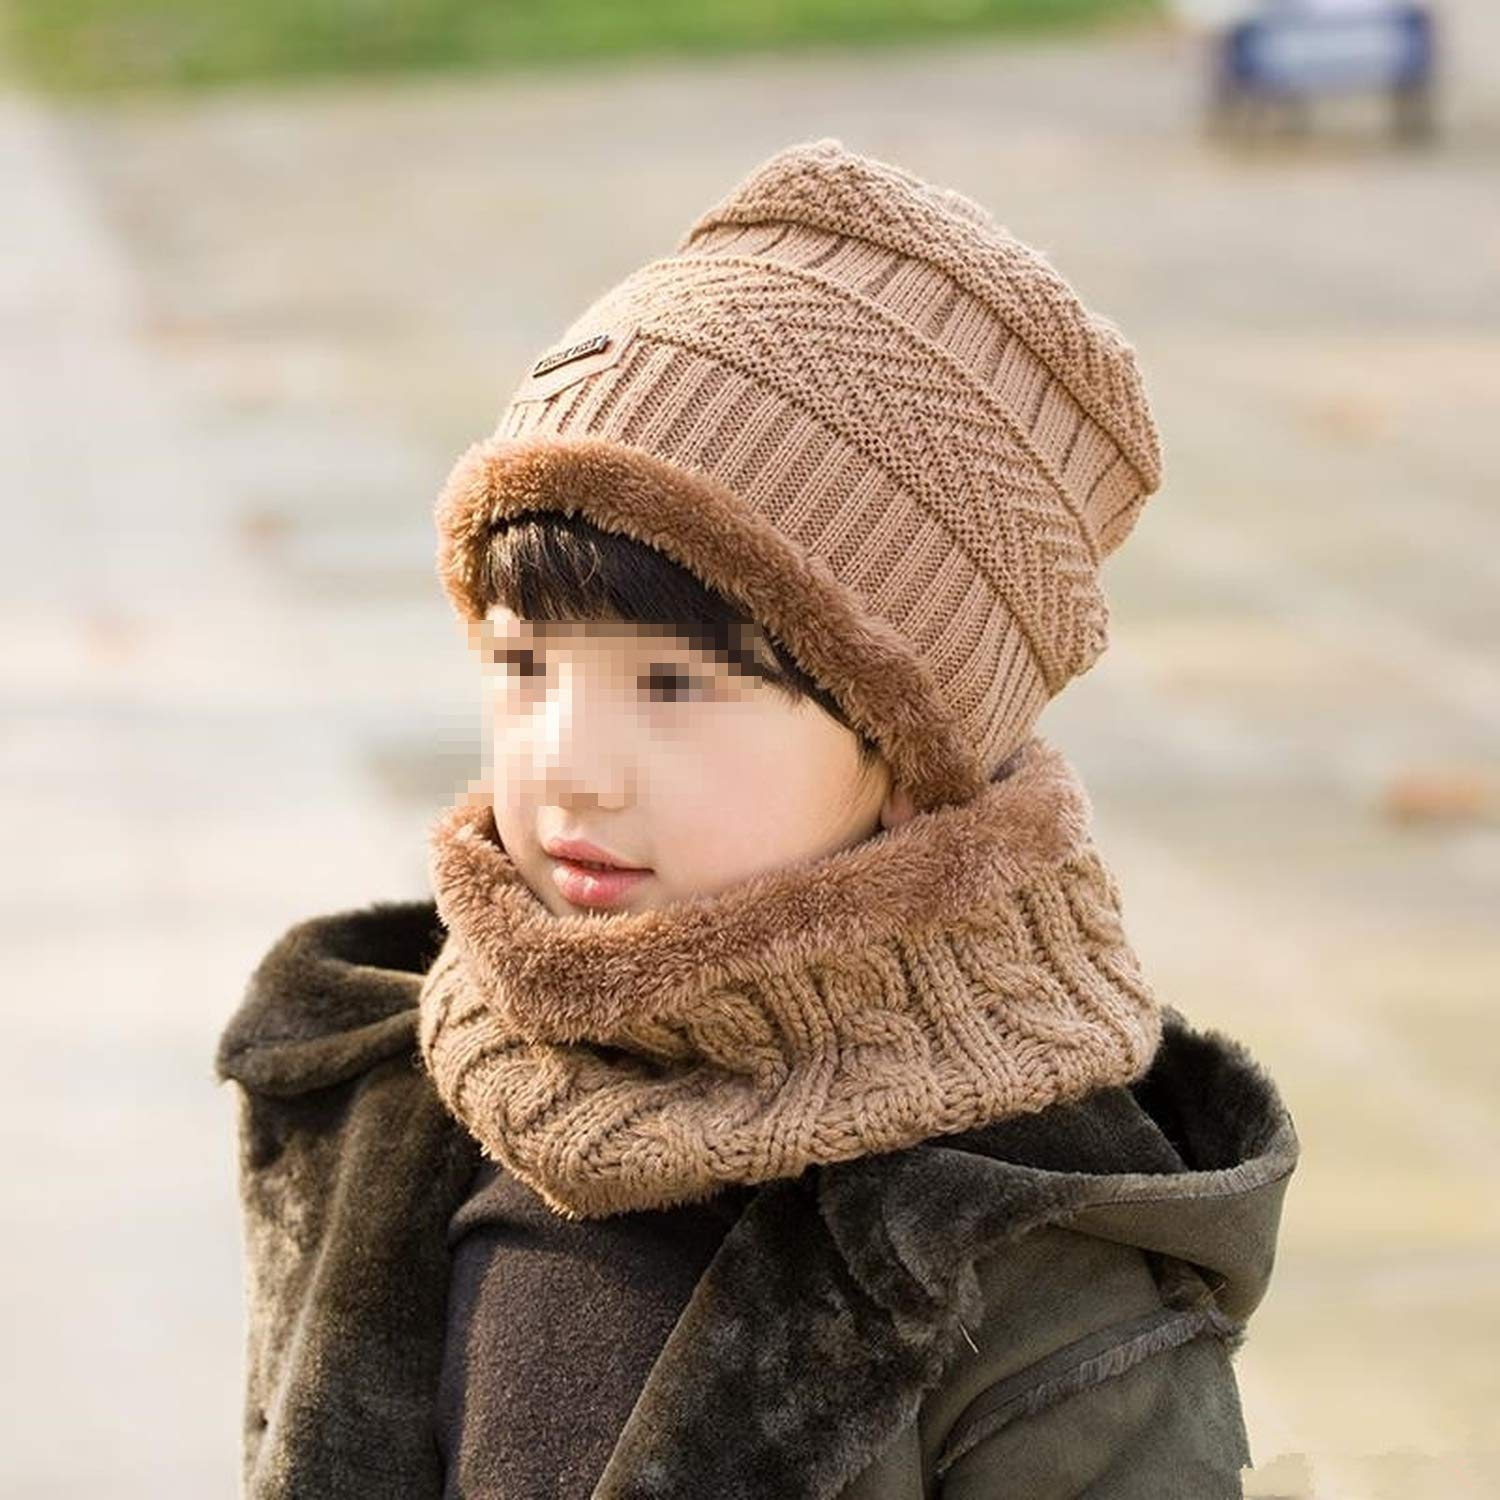 Nutsima Parent Child 2Pcs Super Warm Winter Balaclava Wool Beanies Knitted Hat and Scarf for 3-12 Years Old Girl Boy Hats